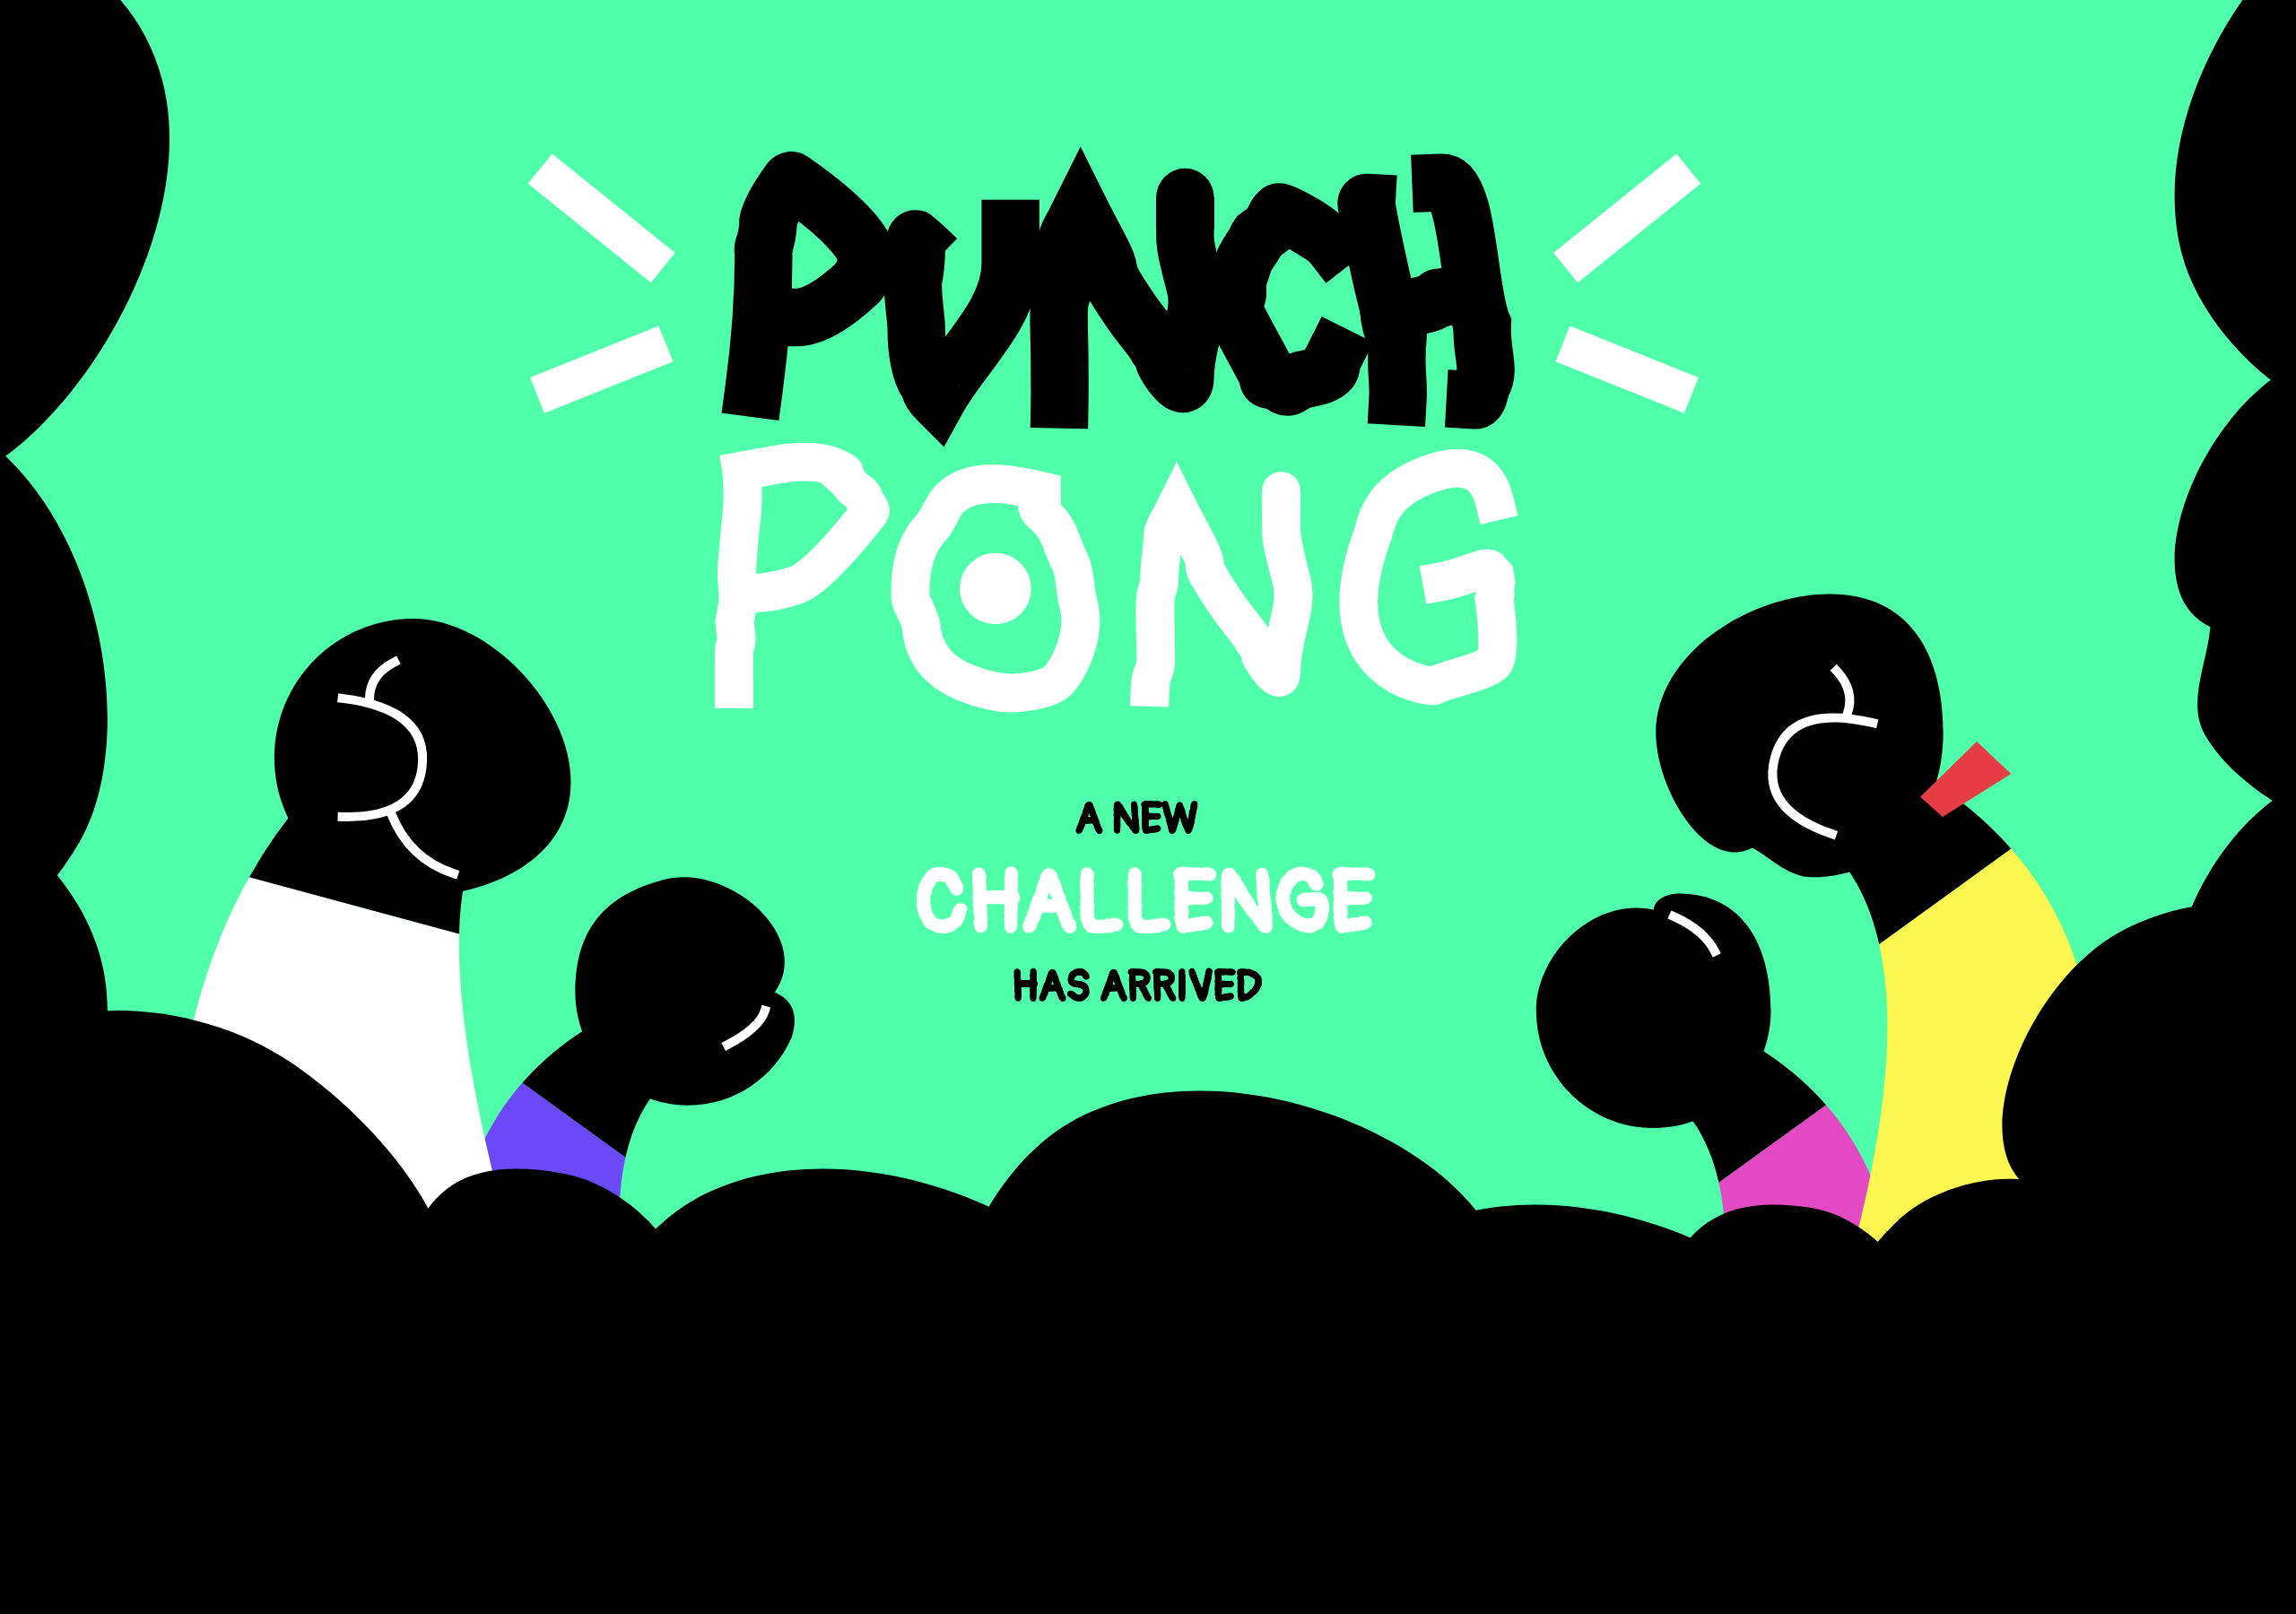 Punch Pong